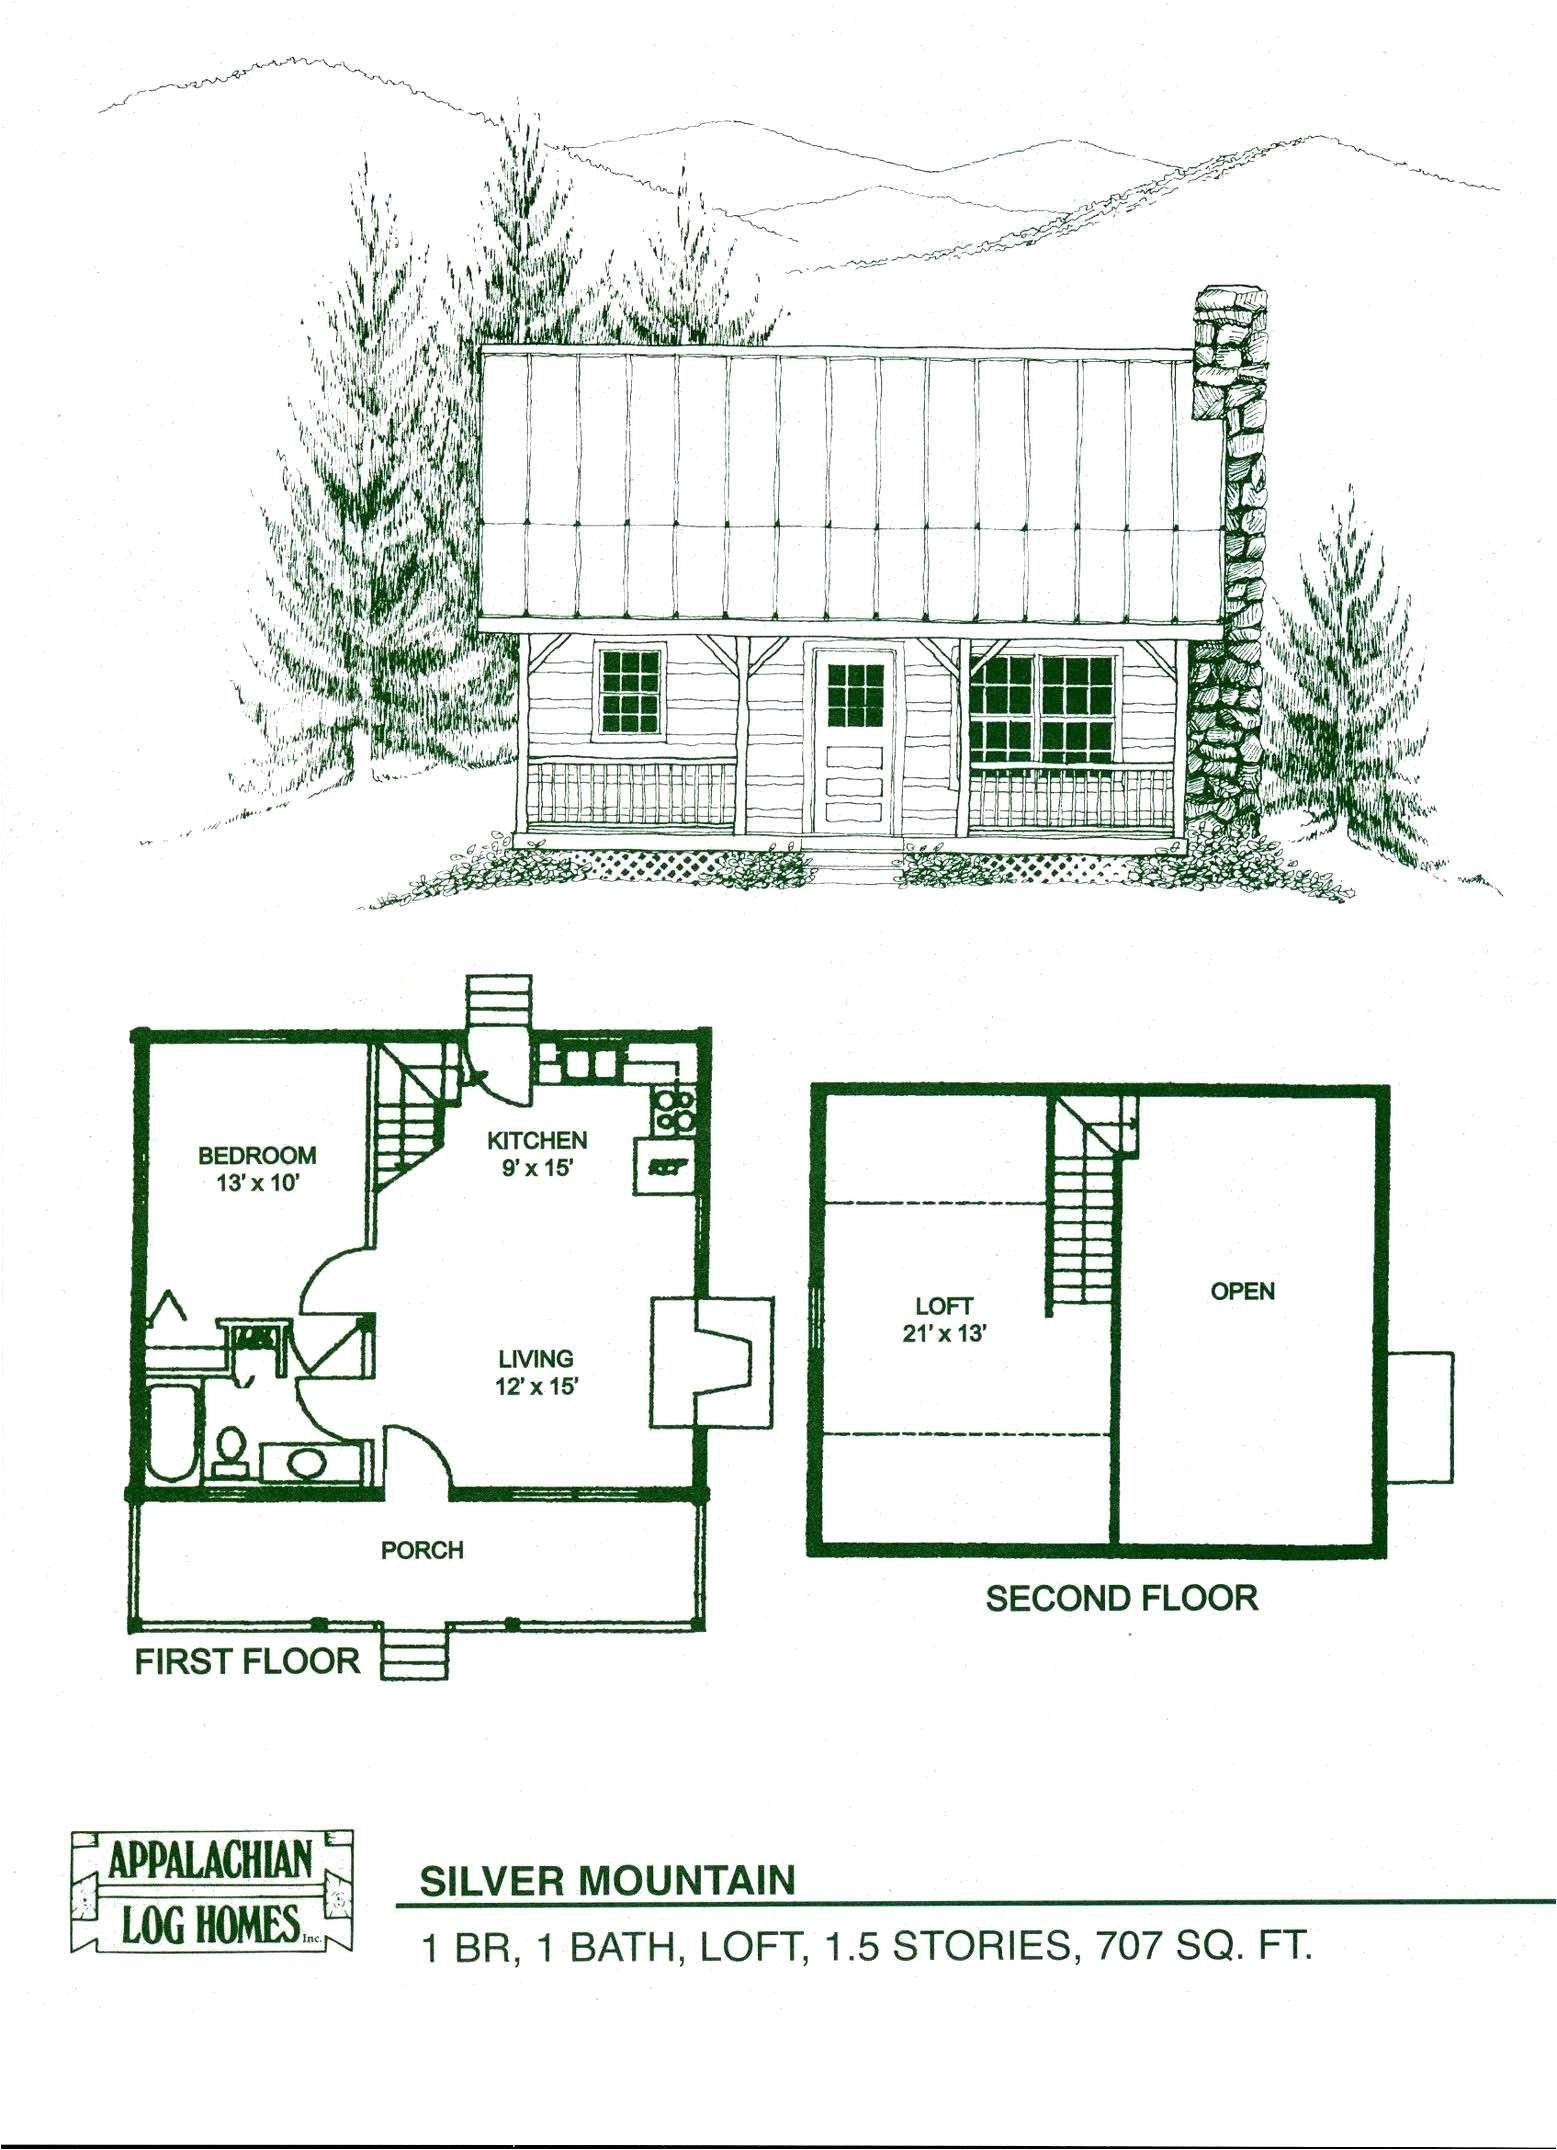 Cottage House Plans with Garage Awesome Chalet House Plans with Loft and Garage 1 Bedroom with Loft